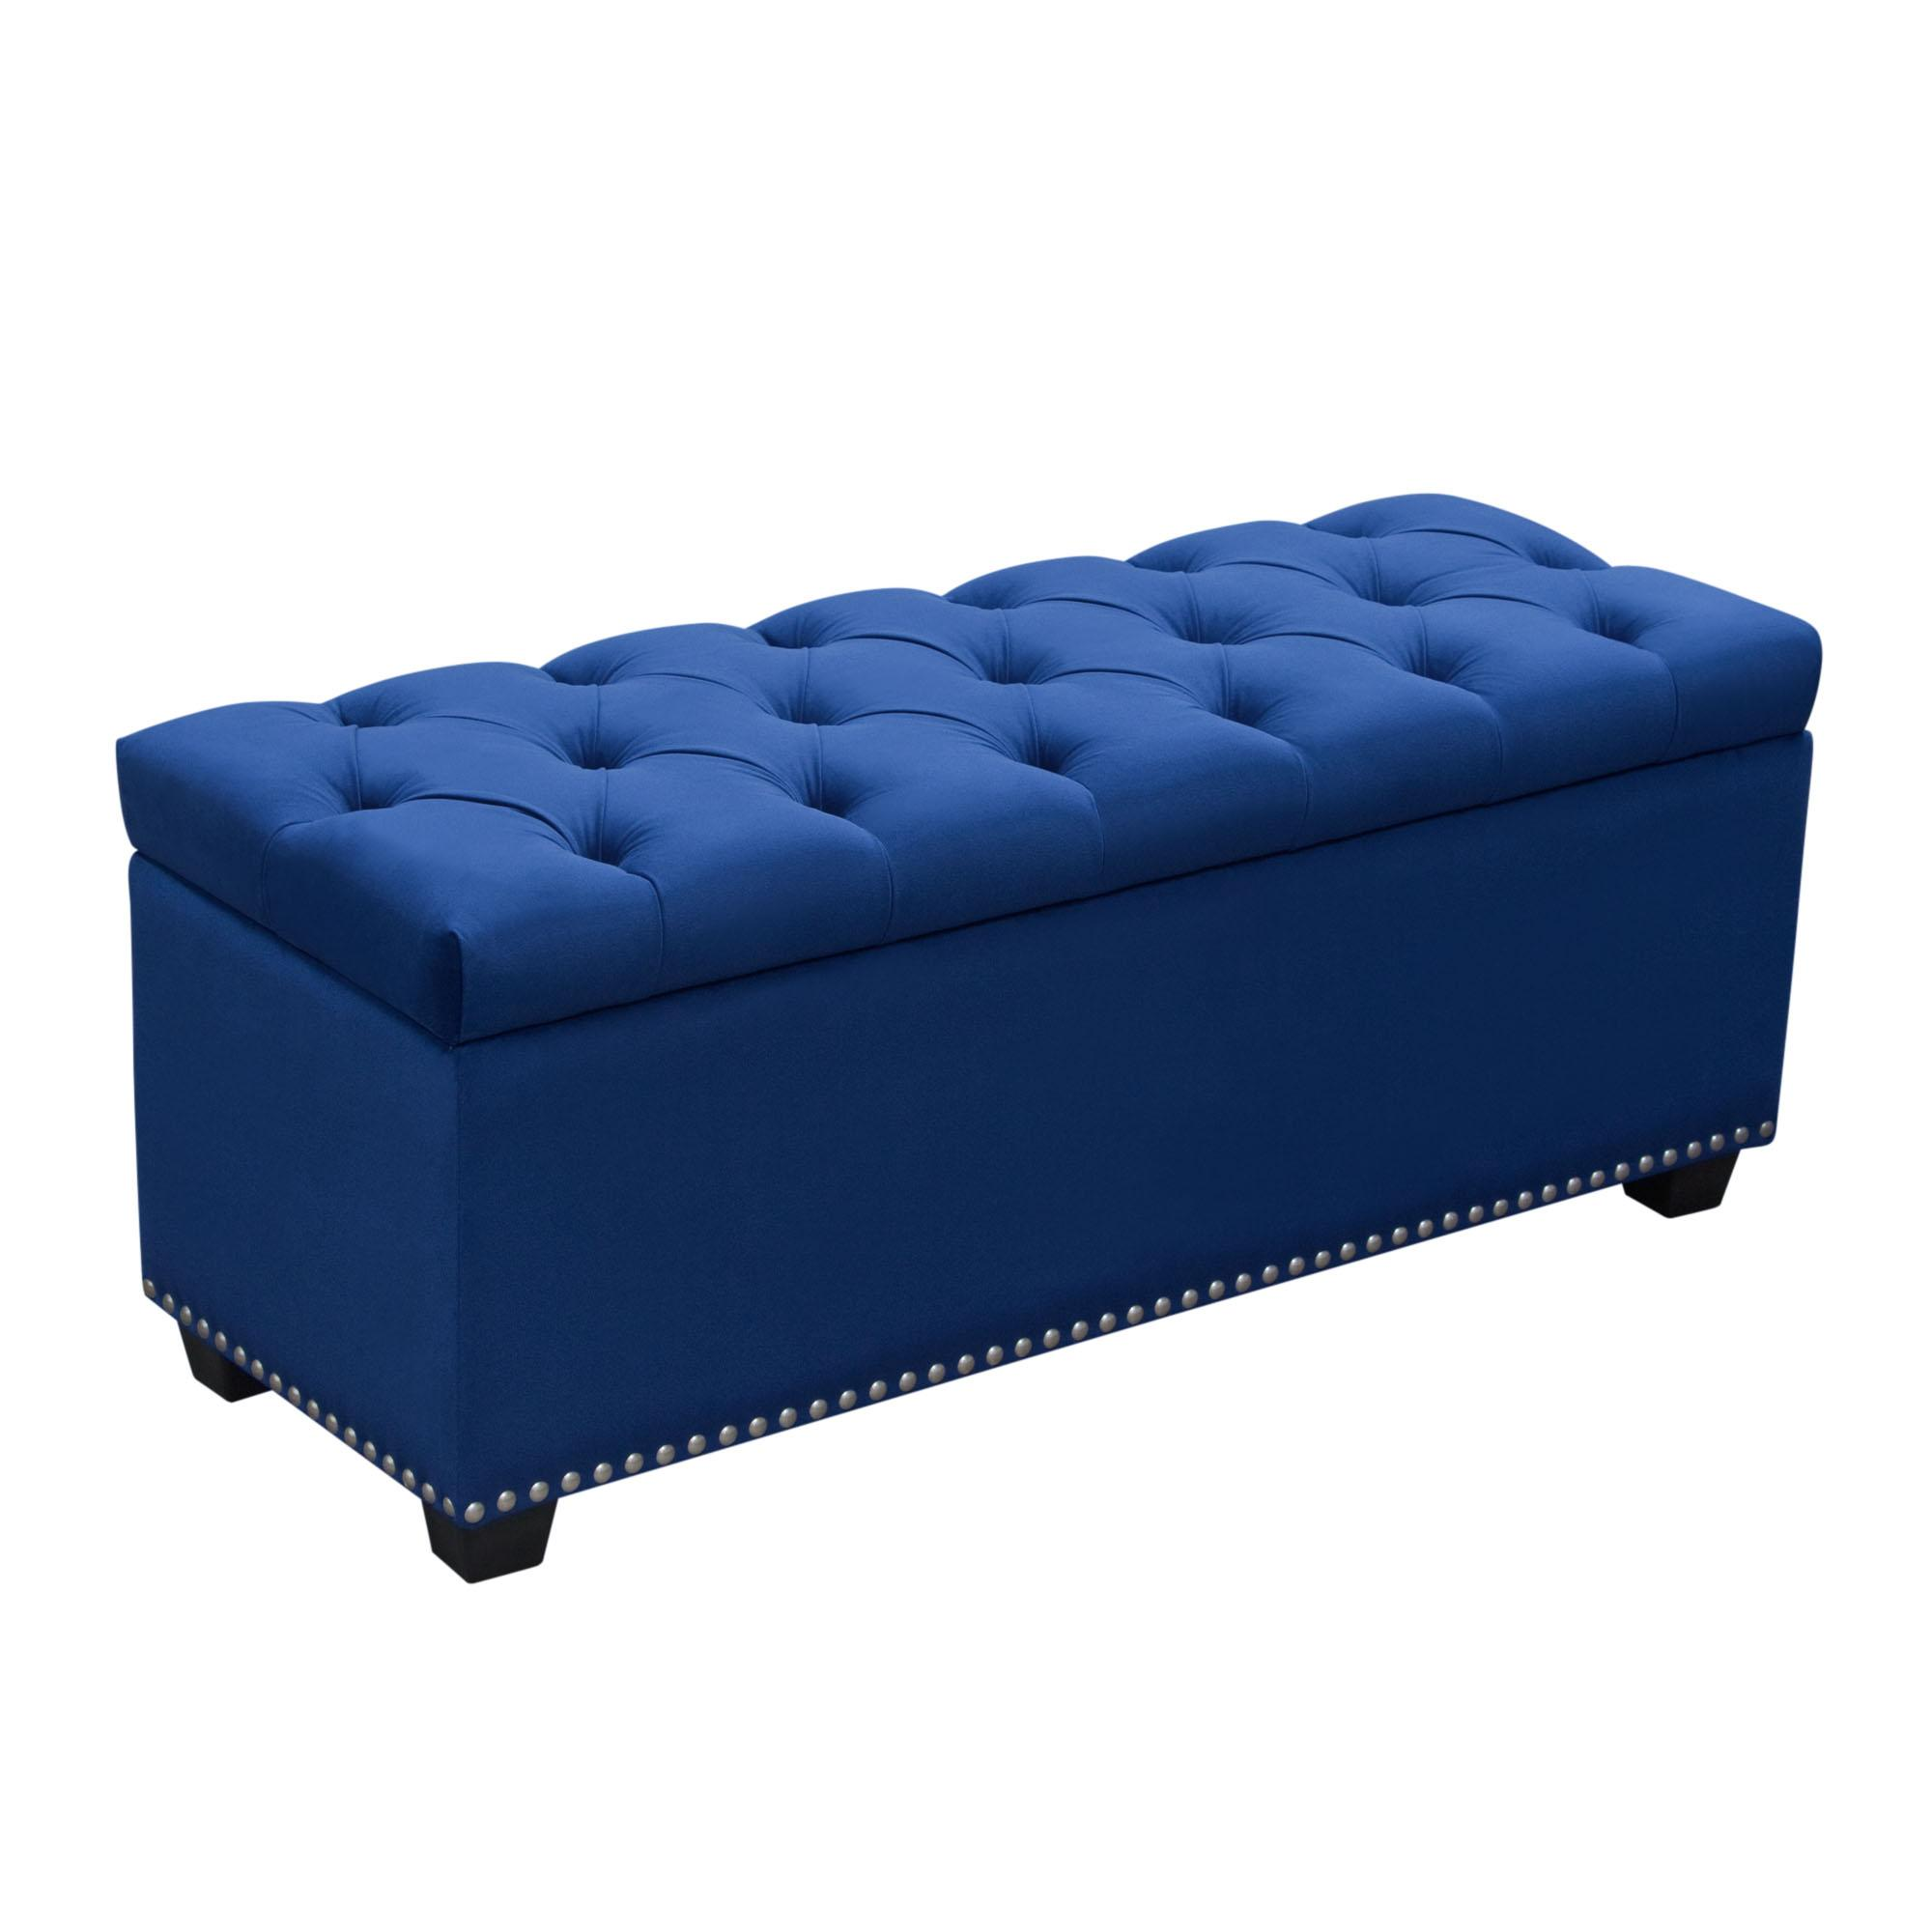 The velvet trend pairs well with this Diamond Sofa trunk perfect for extra storage. (View at bit.ly/Tufted-Trunk)